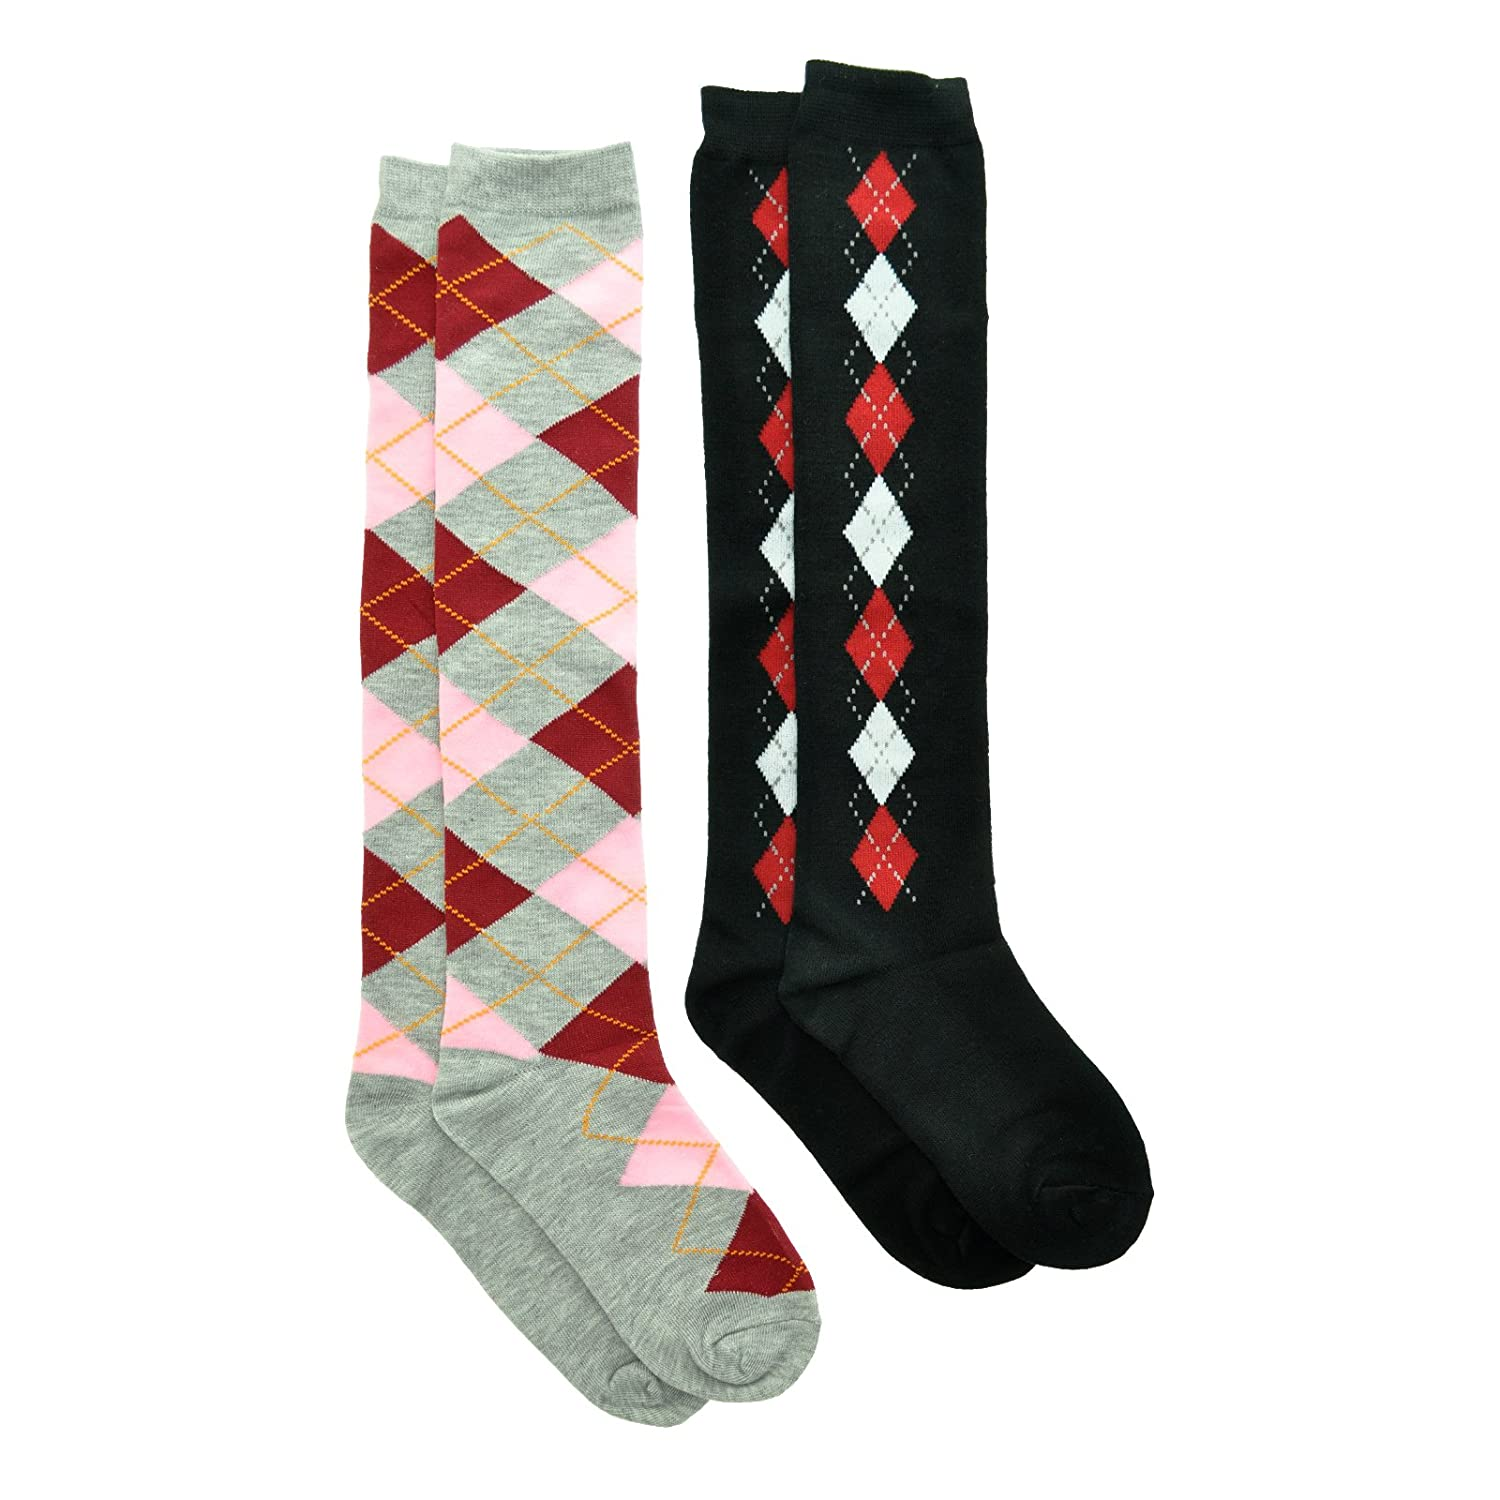 Vintage Socks | 1920s, 1930s, 1940s, 1950s, 1960s History Angelina KNEE HIGH Socks Single-Pair Two-Pair Six-Pair or Dozen Value-Pack $11.99 AT vintagedancer.com